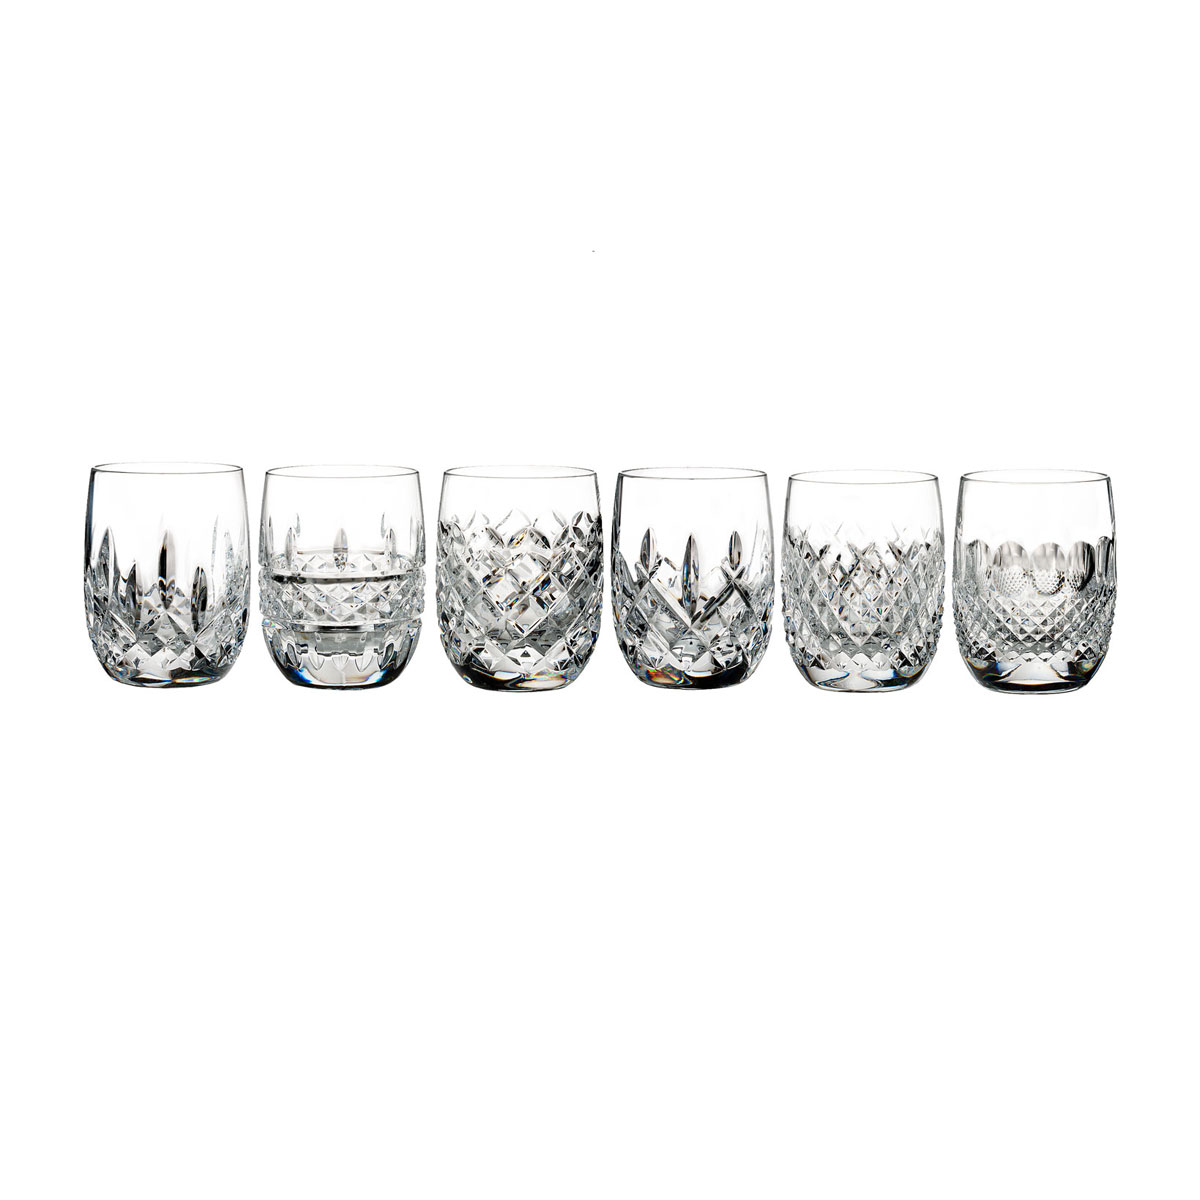 Waterford Crystal, Lismore Connoisseur Rounded Tumbler, Mixed Set of 6